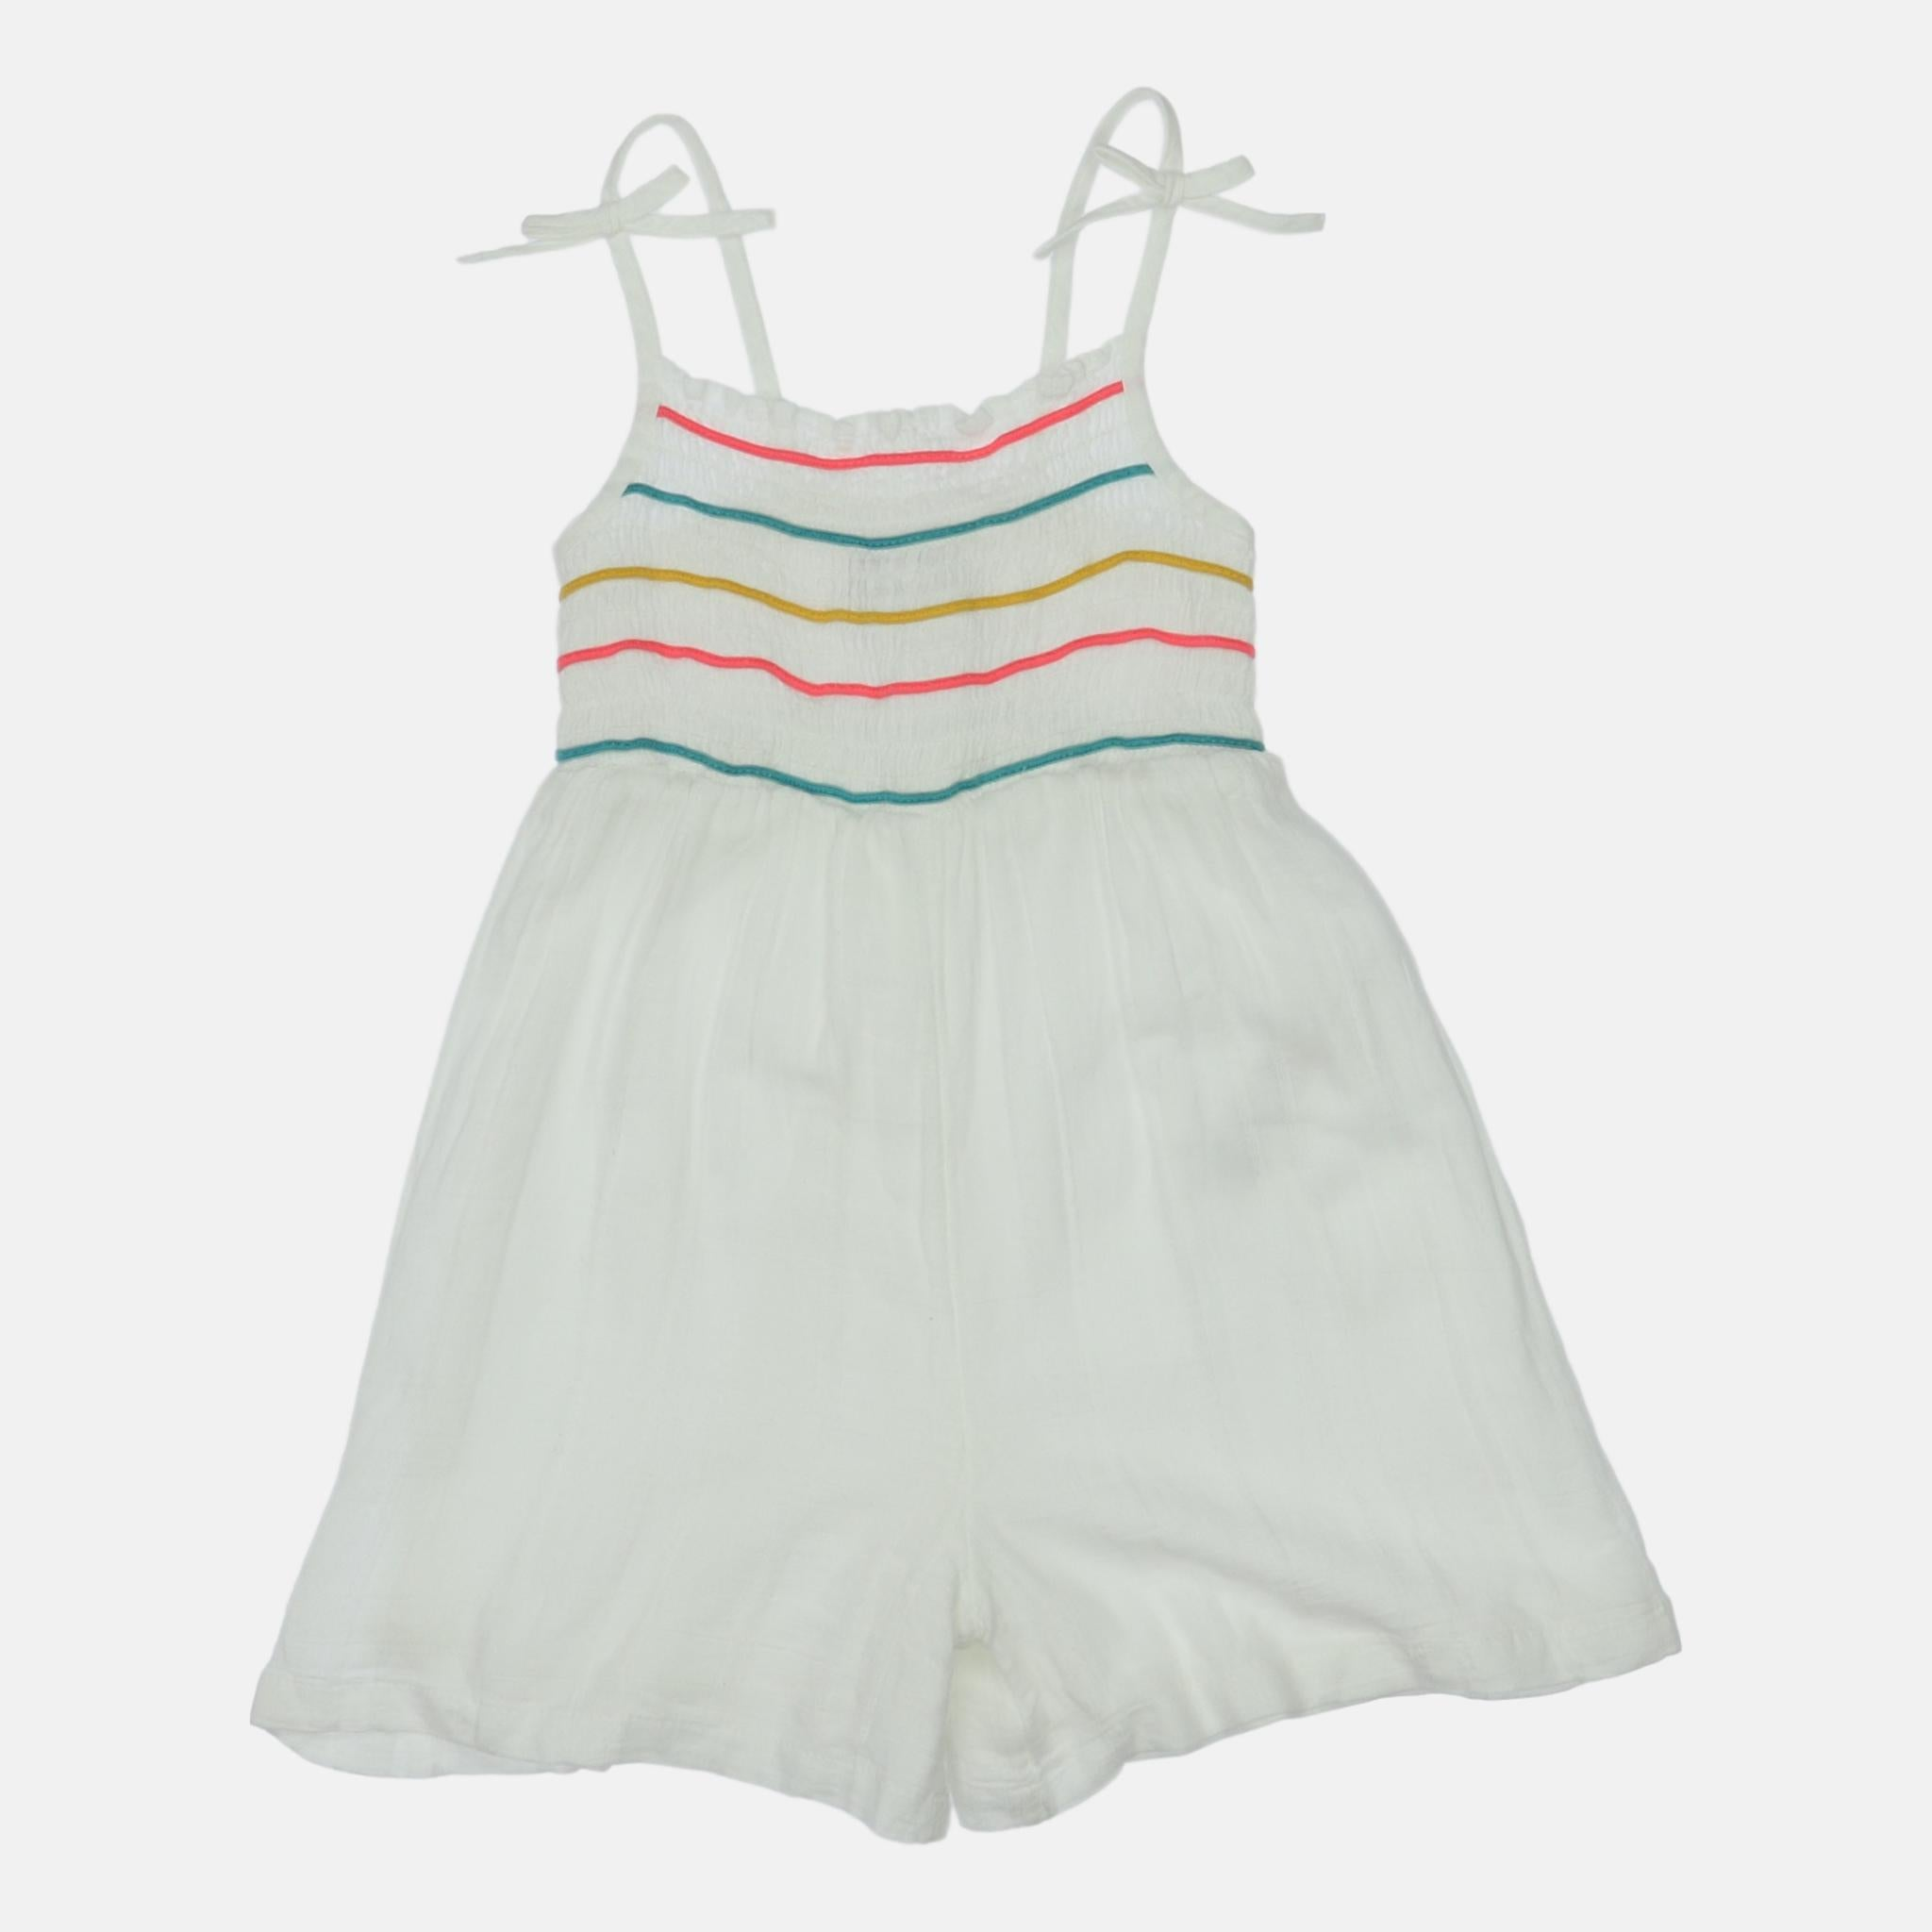 Playsuit, 4-5 years